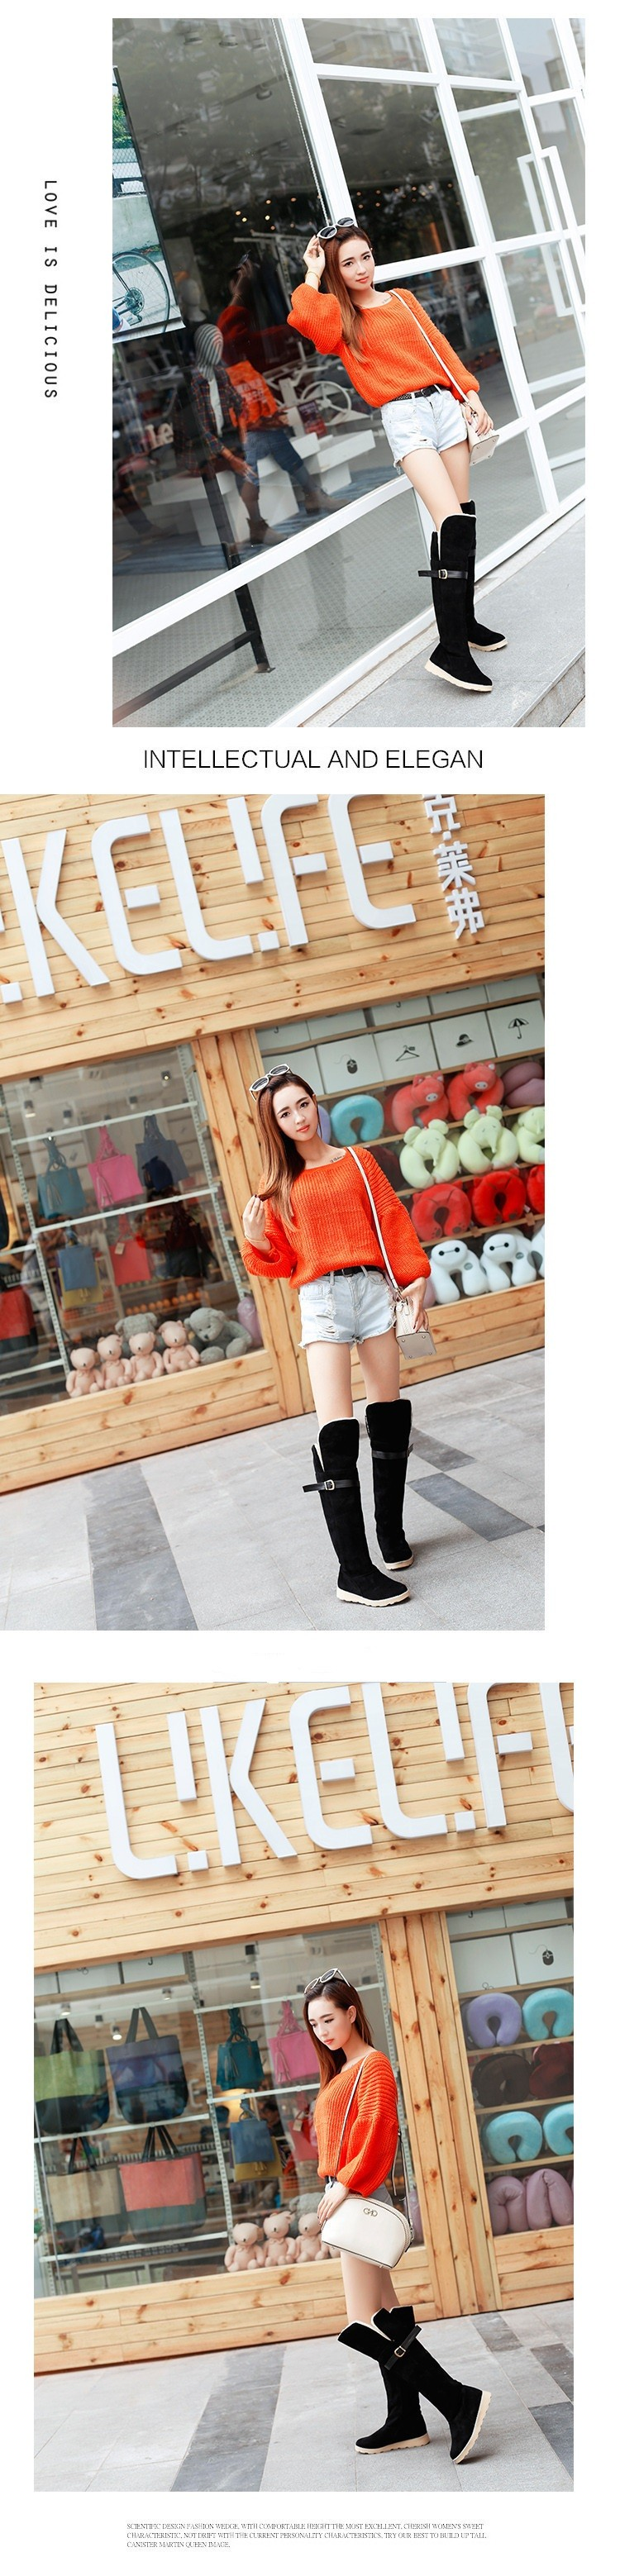 2015 Hot Sale Winter Boots Warm Snow Boots For Women Fashion Flat Heels Knee-High Botas Mujer Casual Women Shoes BT4 (2)